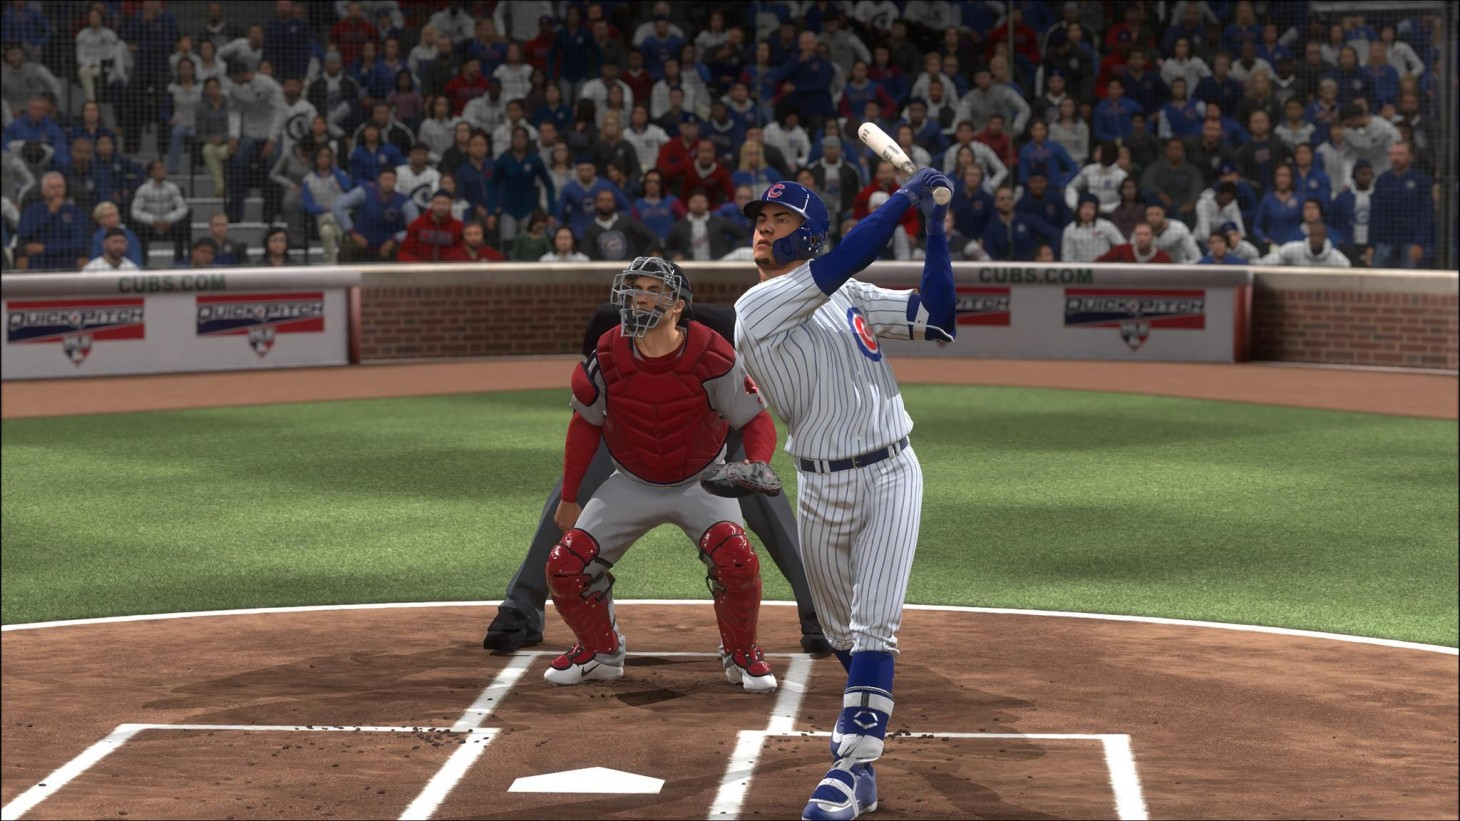 MLB The Show 19 for macOS gameplay